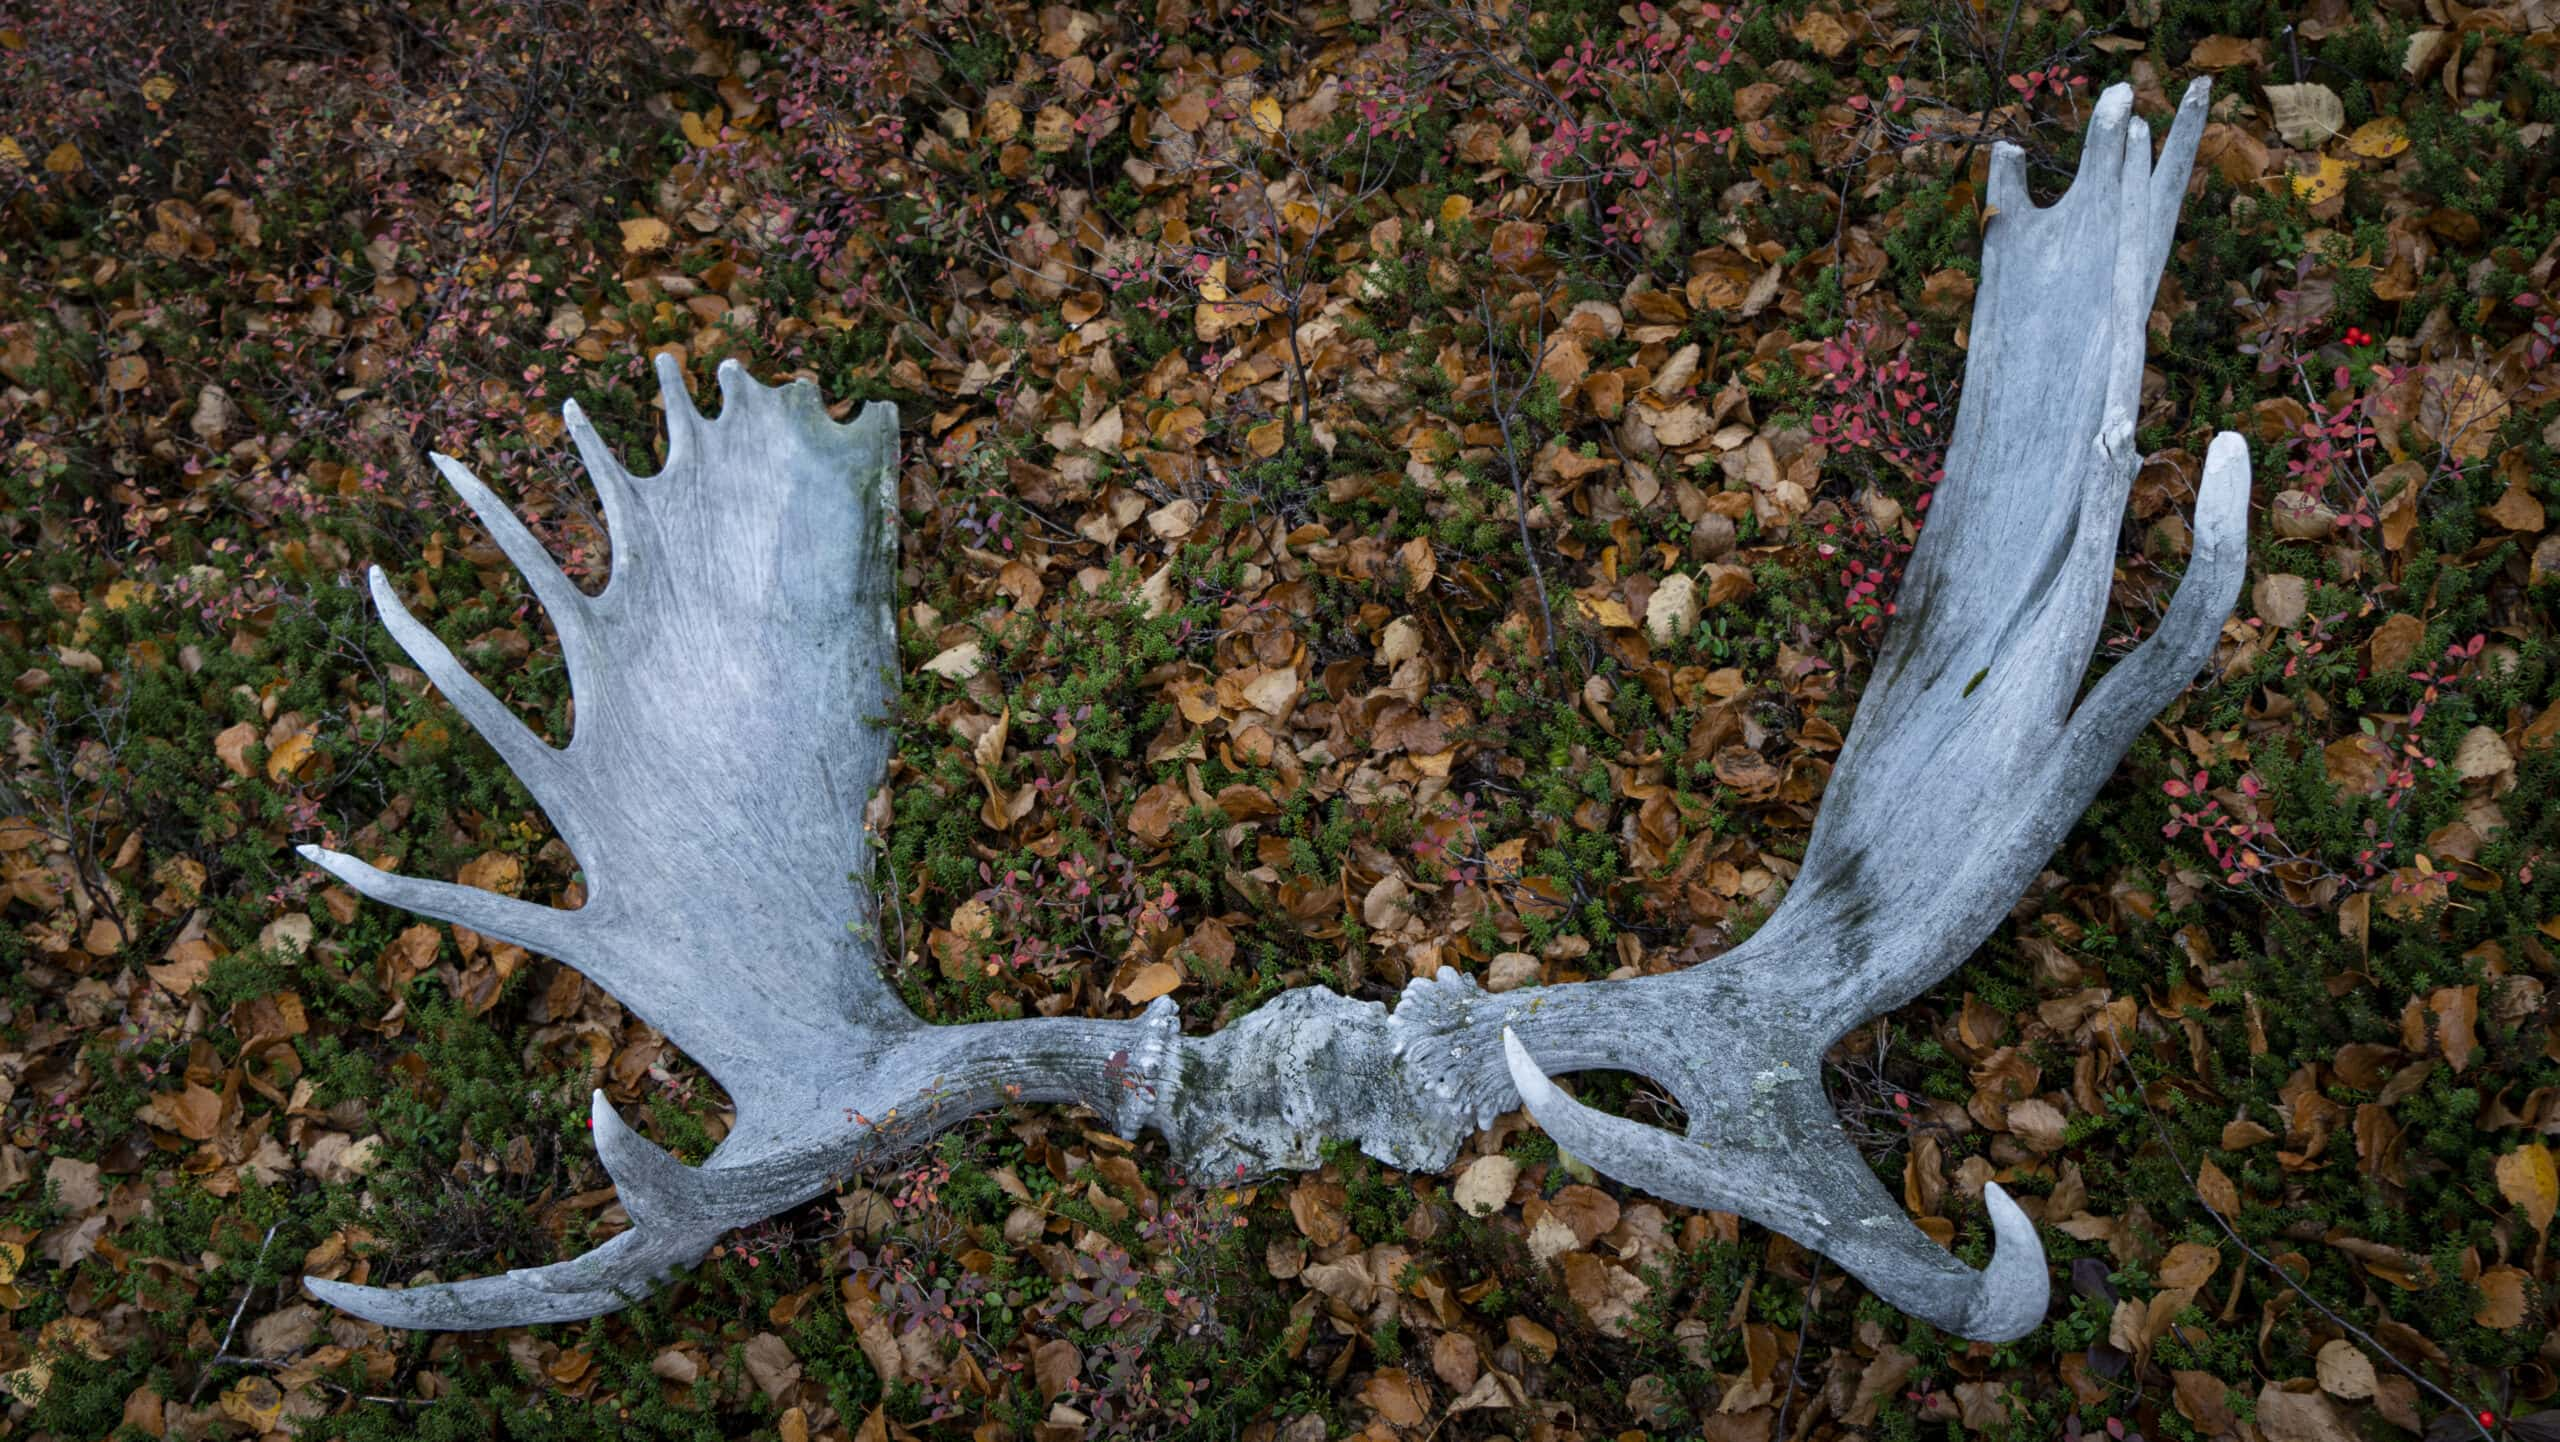 caribou antlers on the ground among fall leaves